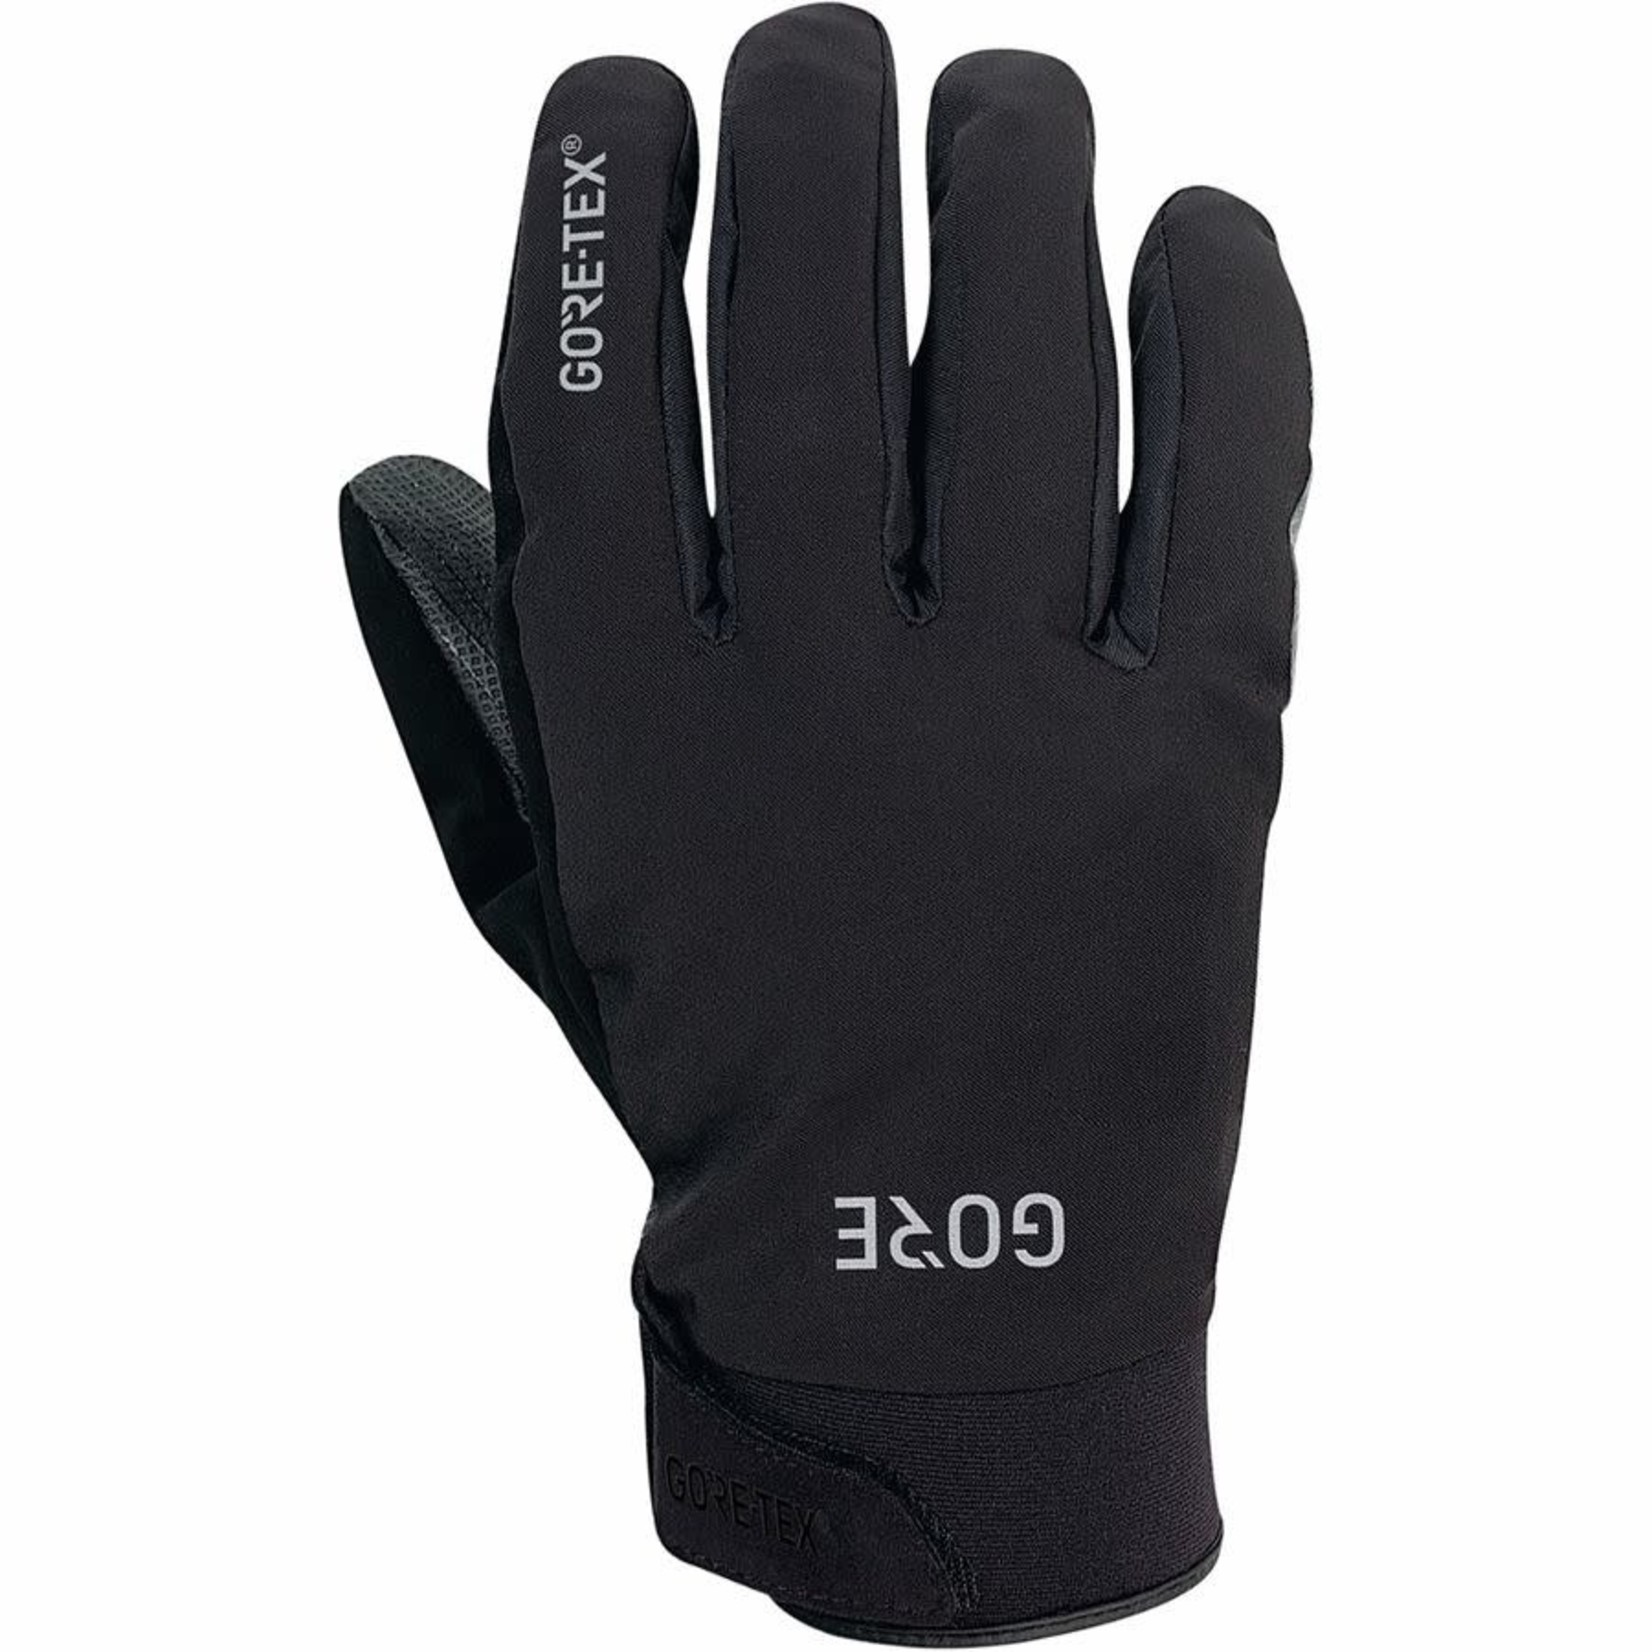 GORE Wear GORE C5 GORE-TEX Thermo Gloves - Black, Large